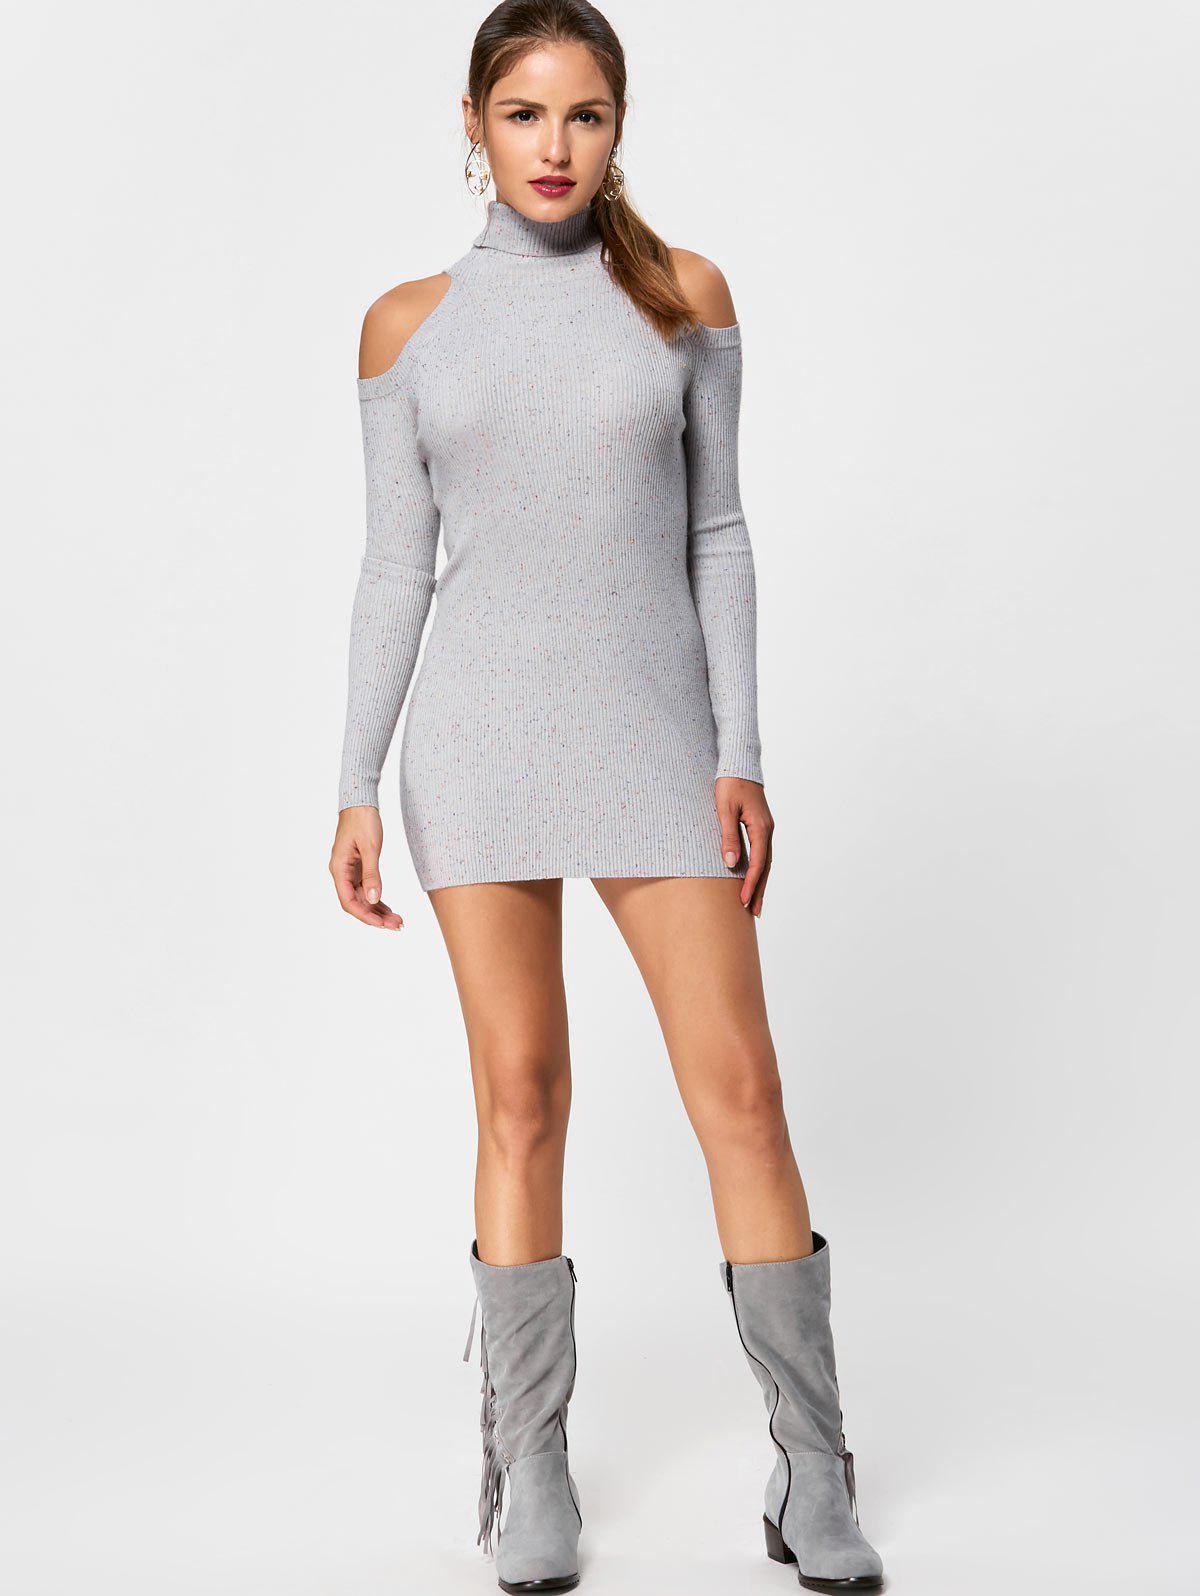 Turtleneck Cold Shoulder Jumper Dress - LIGHT GREY L